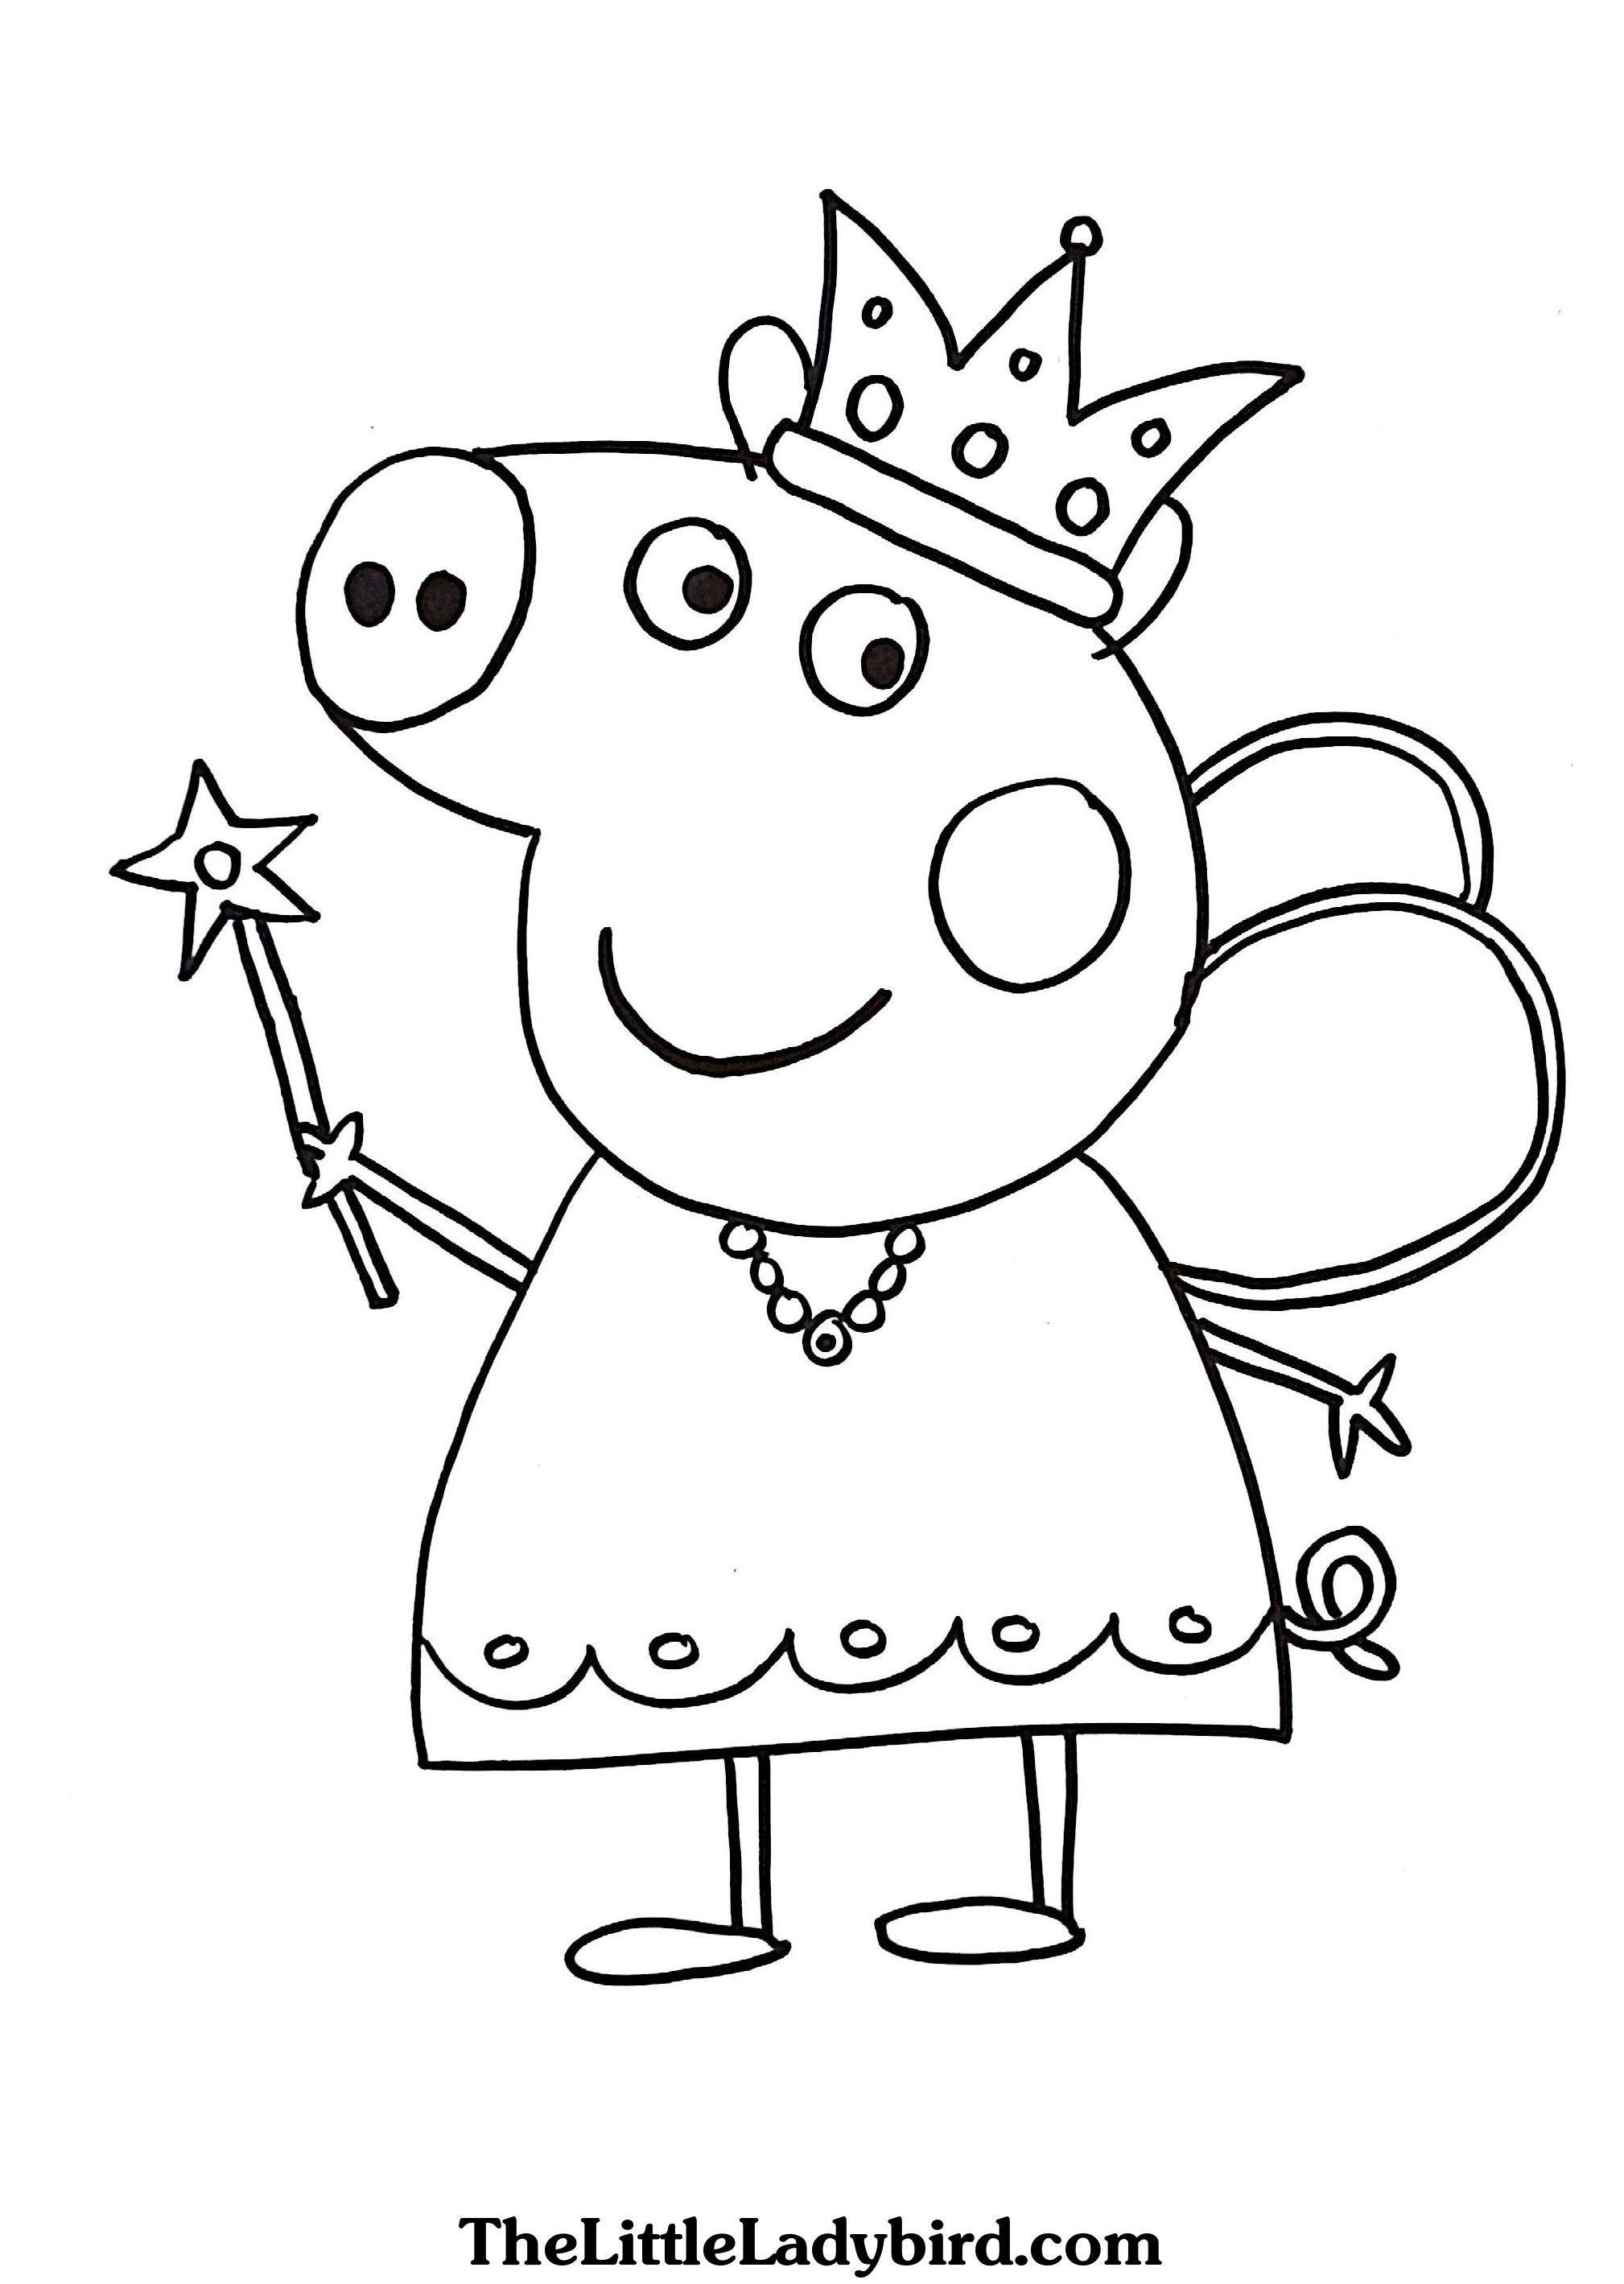 Peppa Pig Printable Coloring Pages Free Childrens Coloring Pages ...